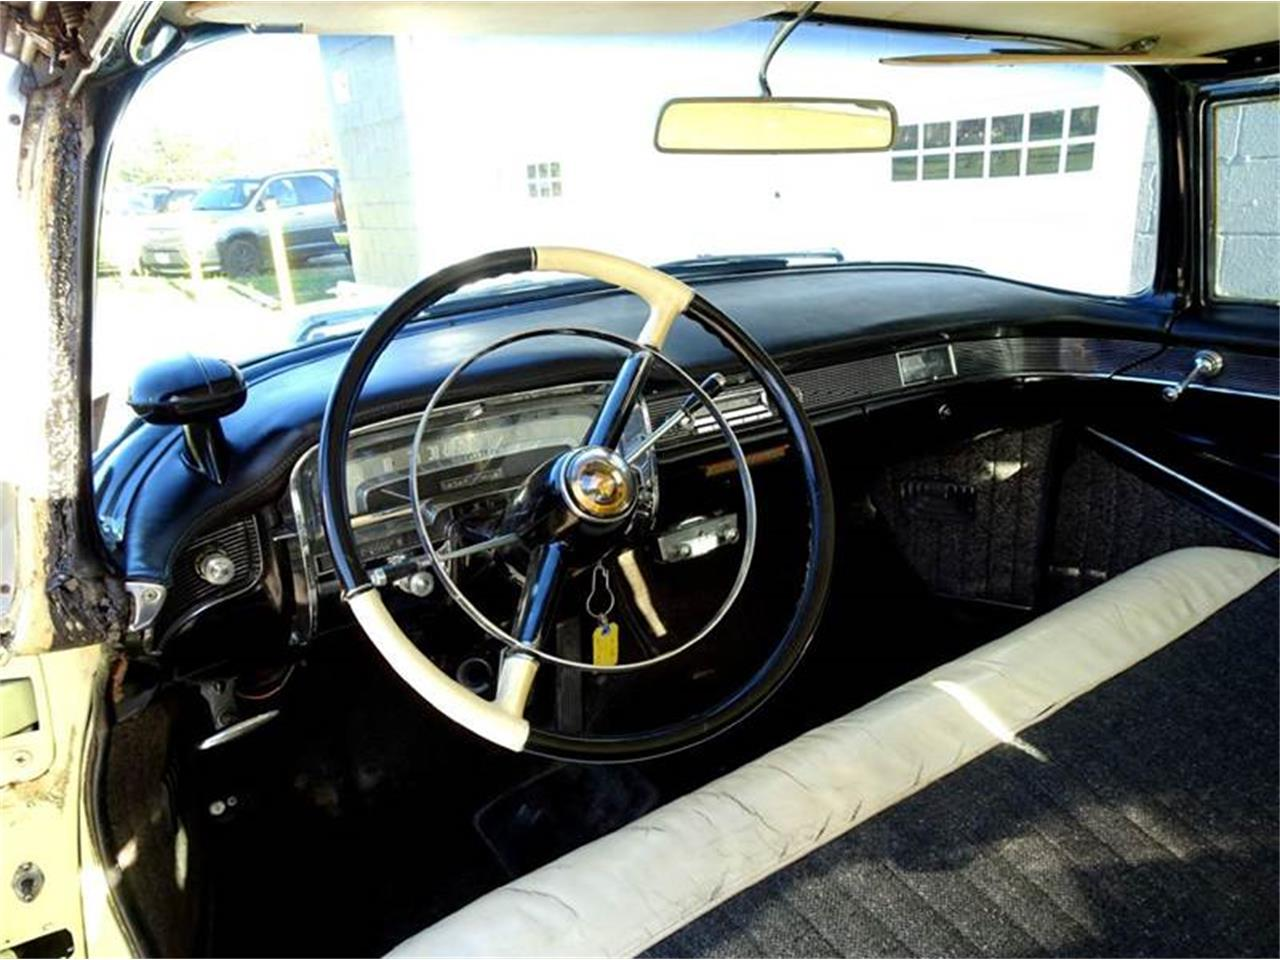 Large Picture of Classic '54 Cadillac DeVille located in New York - $16,795.00 Offered by Great Lakes Classic Cars - M8ZD